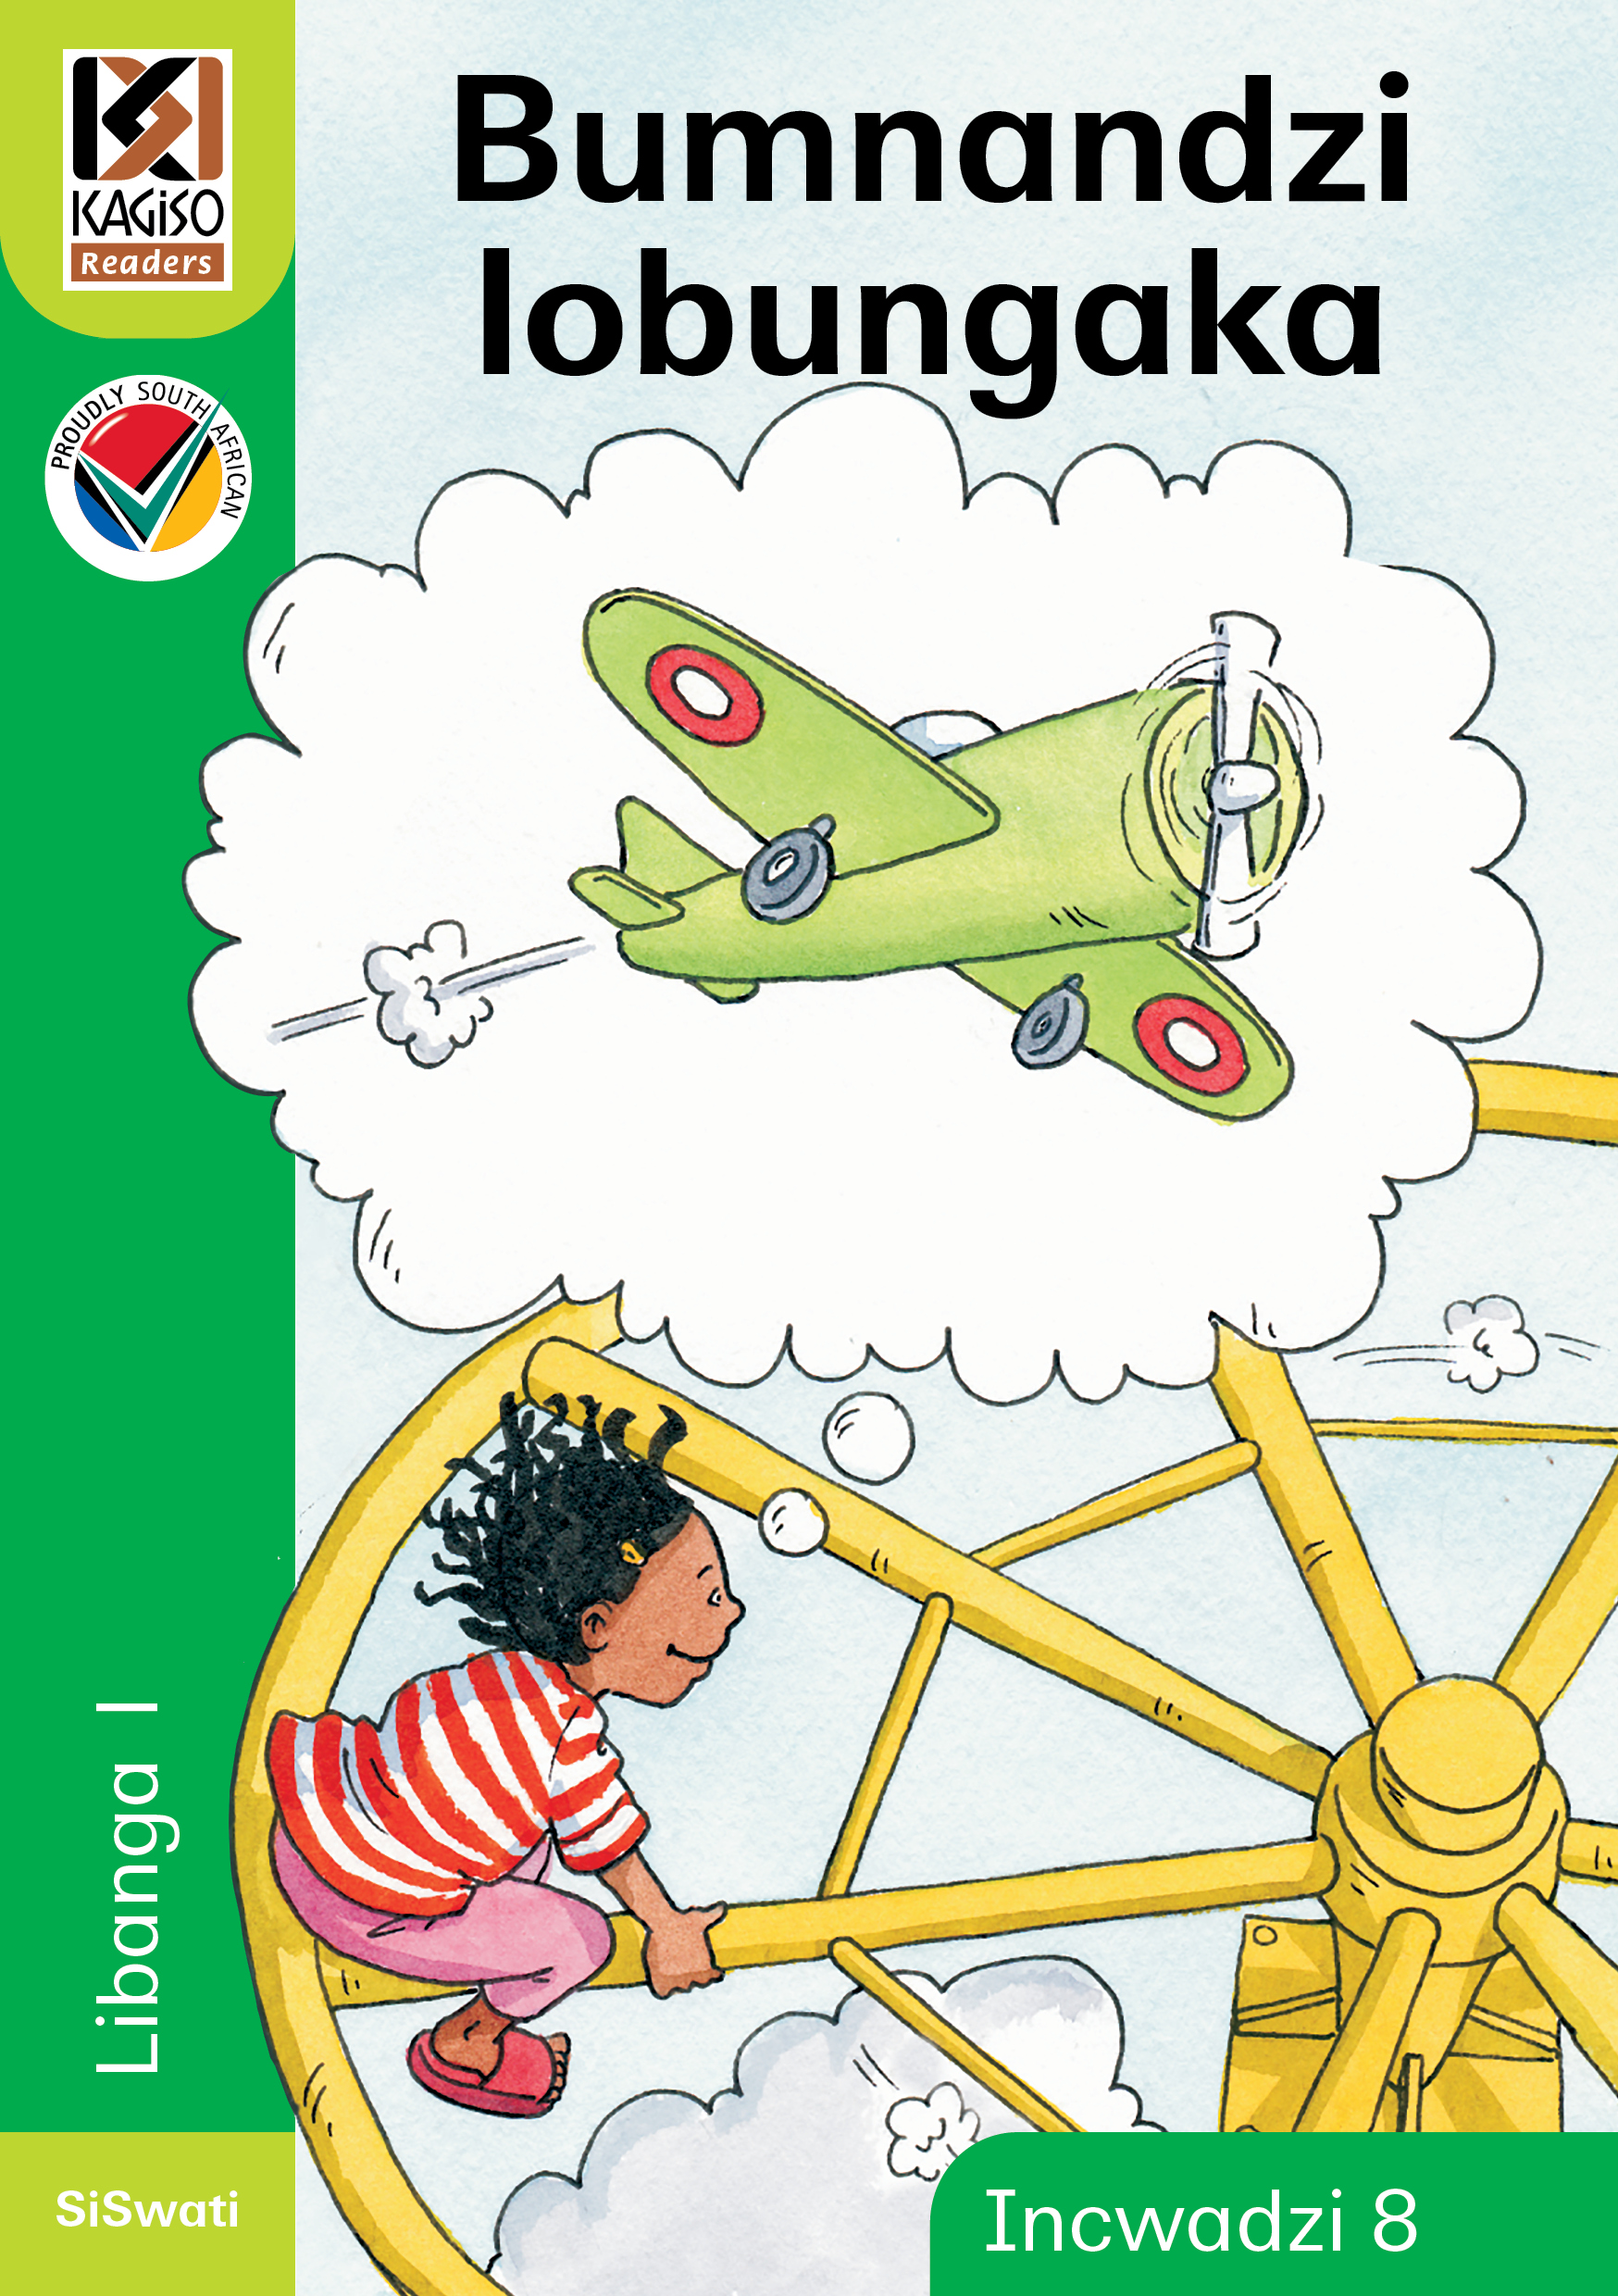 Picture of Kagiso Reader: Bumnandzi lobungaka (NCS) : Grade 1 : Book 8